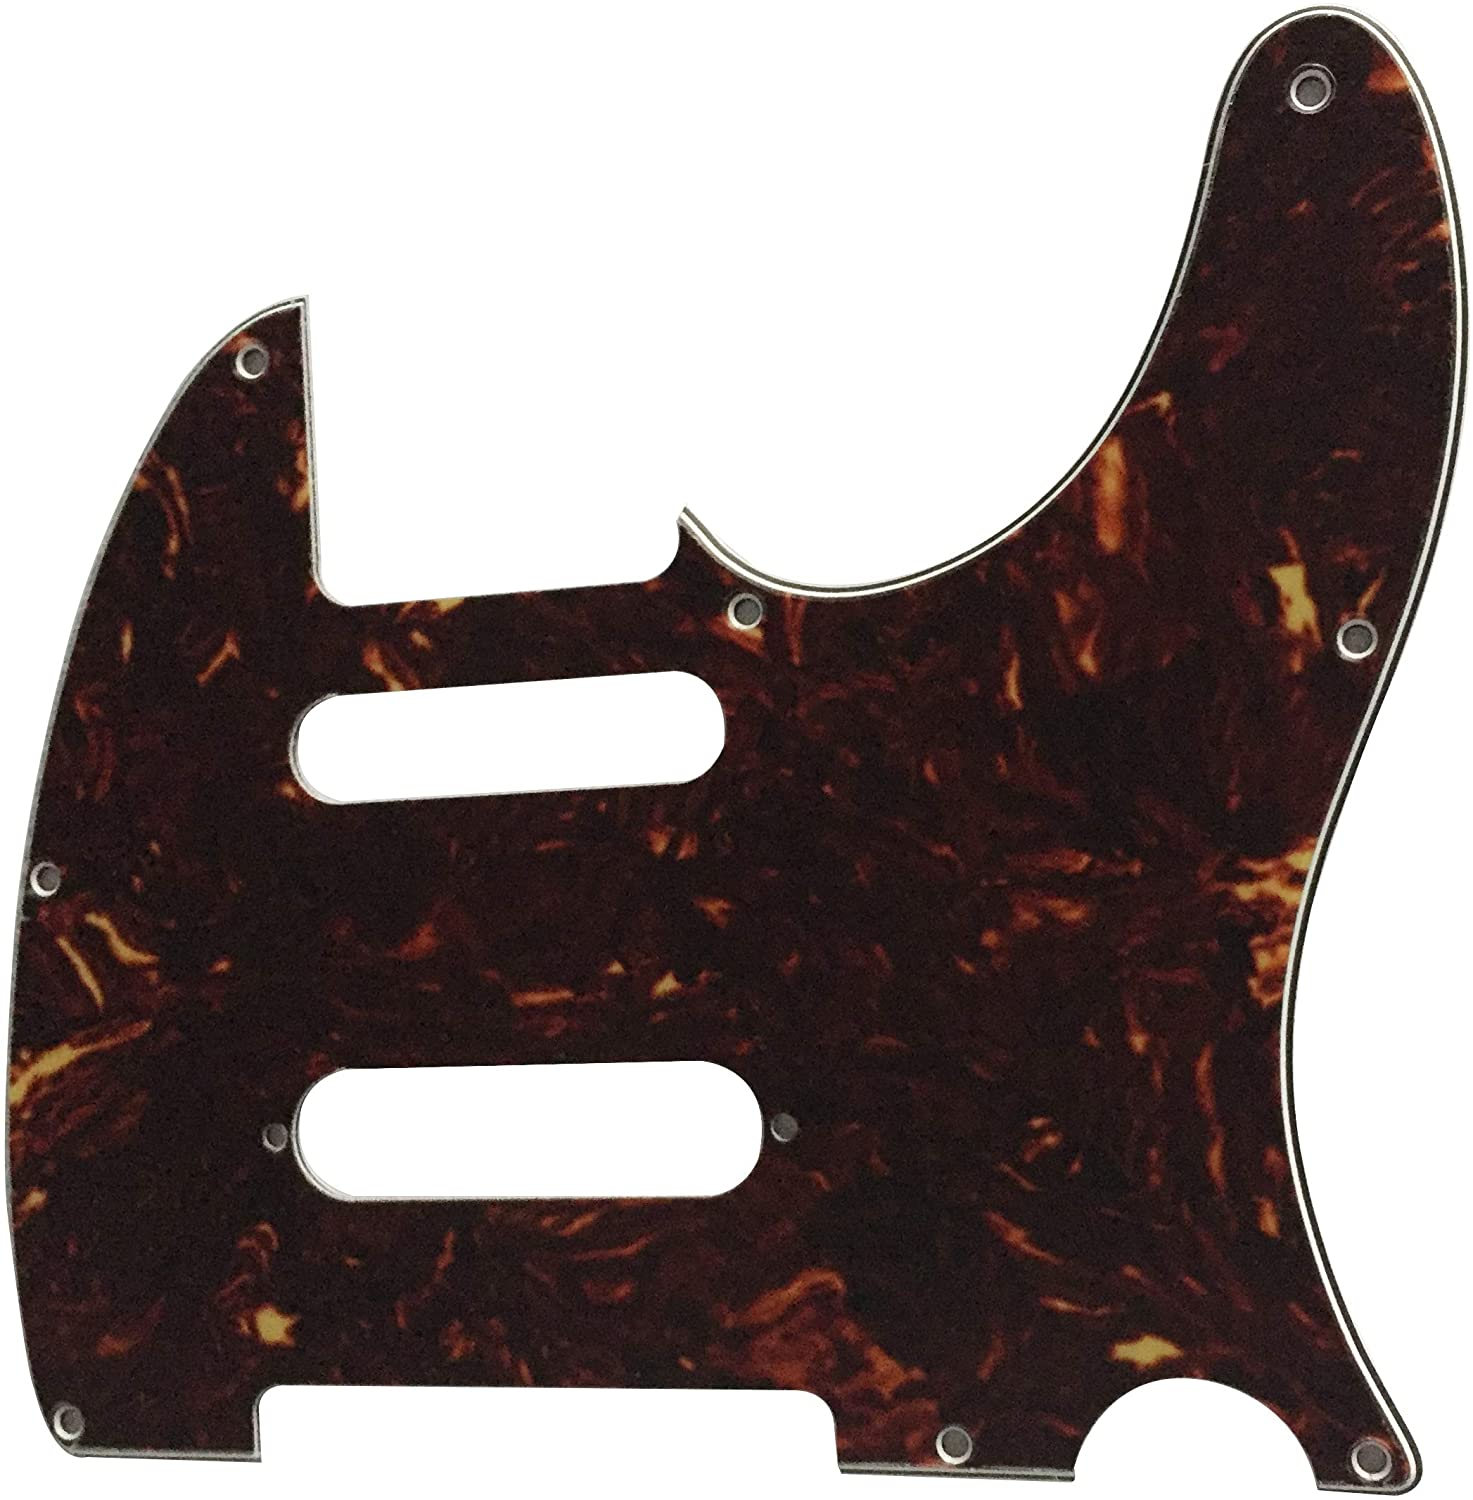 Guitar Pickguard For Fender Telecaster Nashville Tele Style Scratch Plate (4 Ply Brown Tortoise)